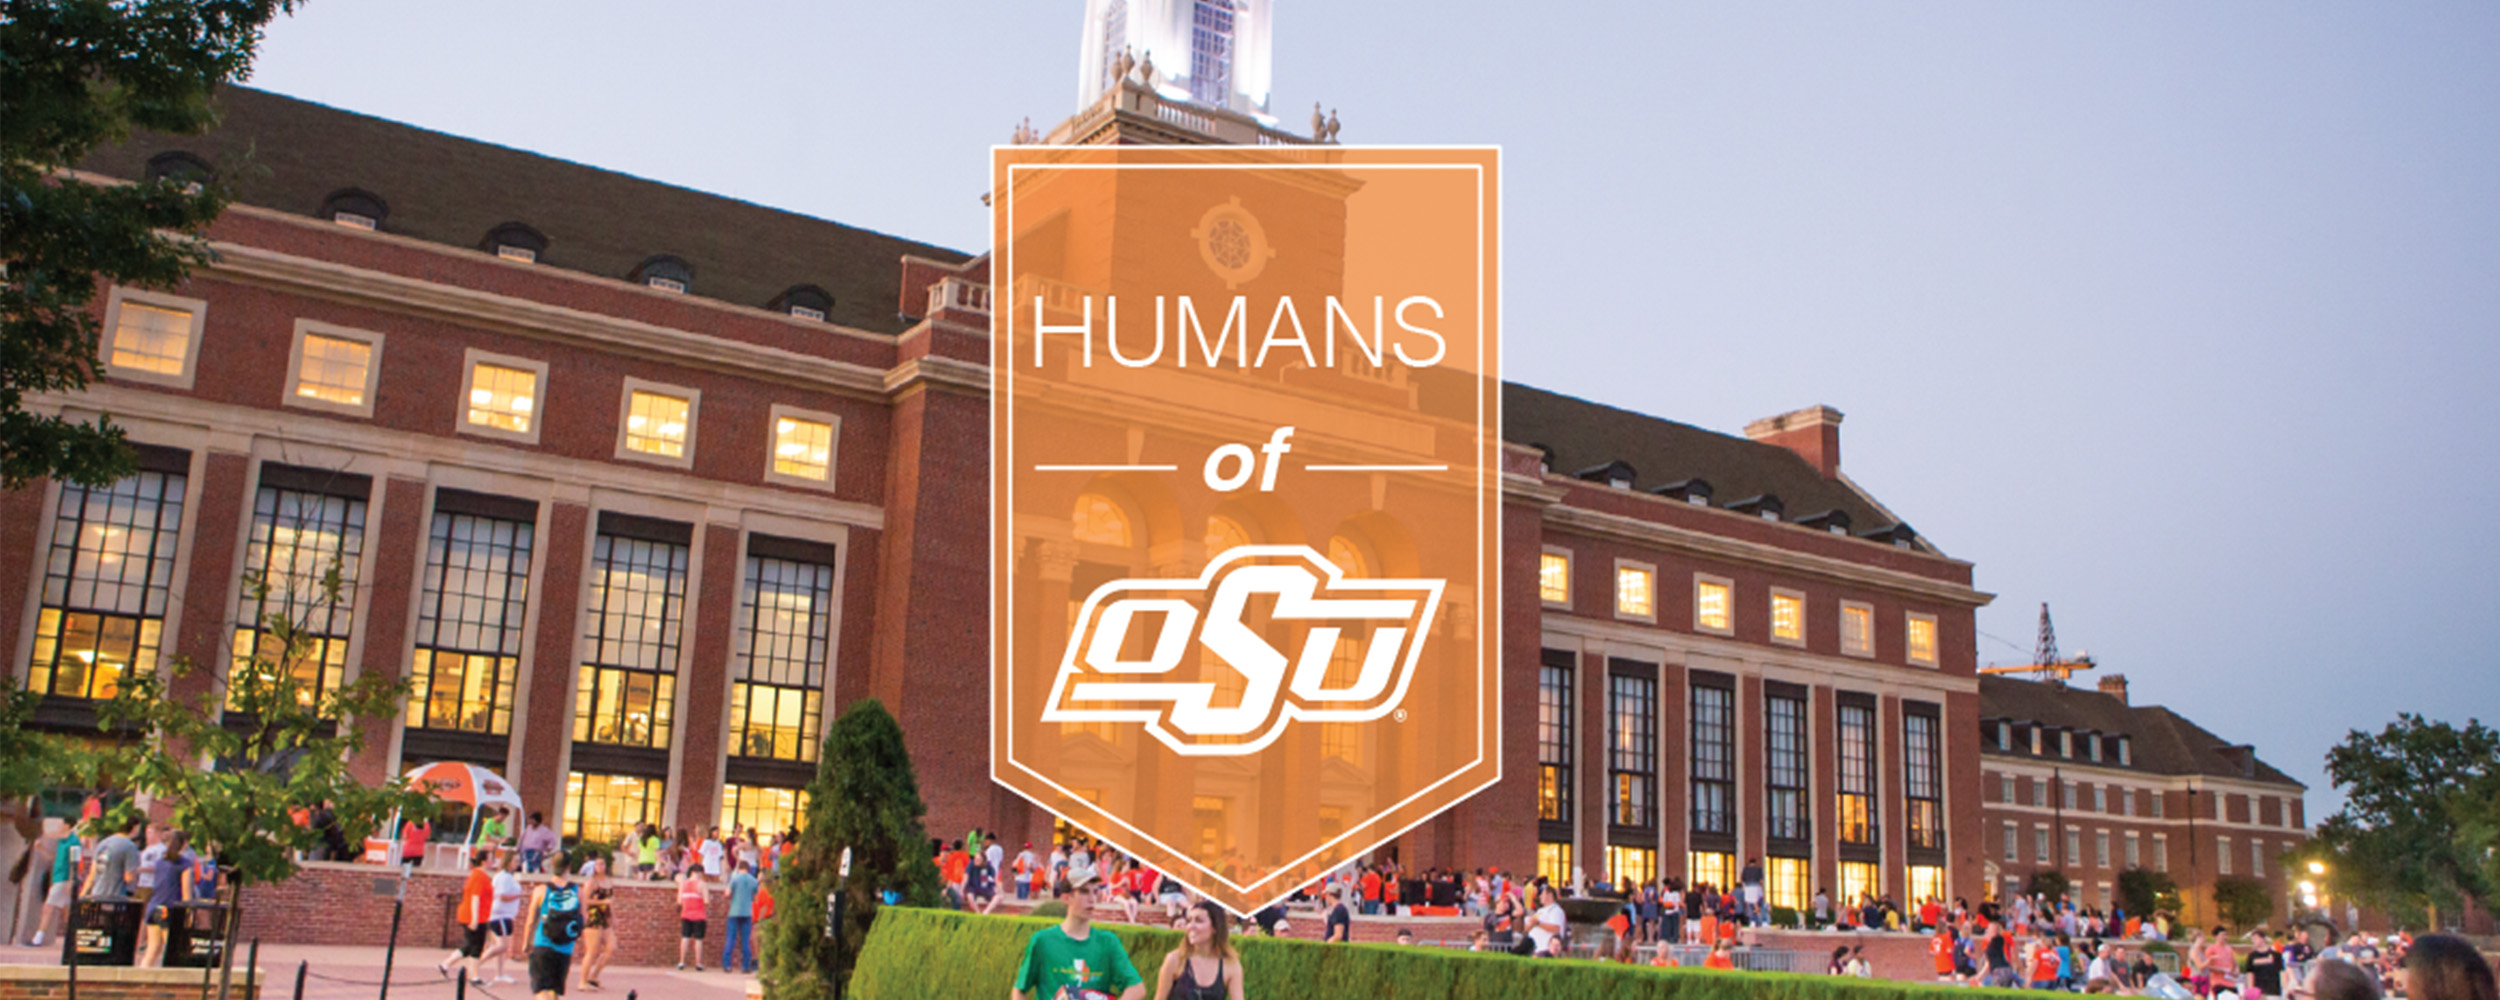 Humans of OSU banner with logo